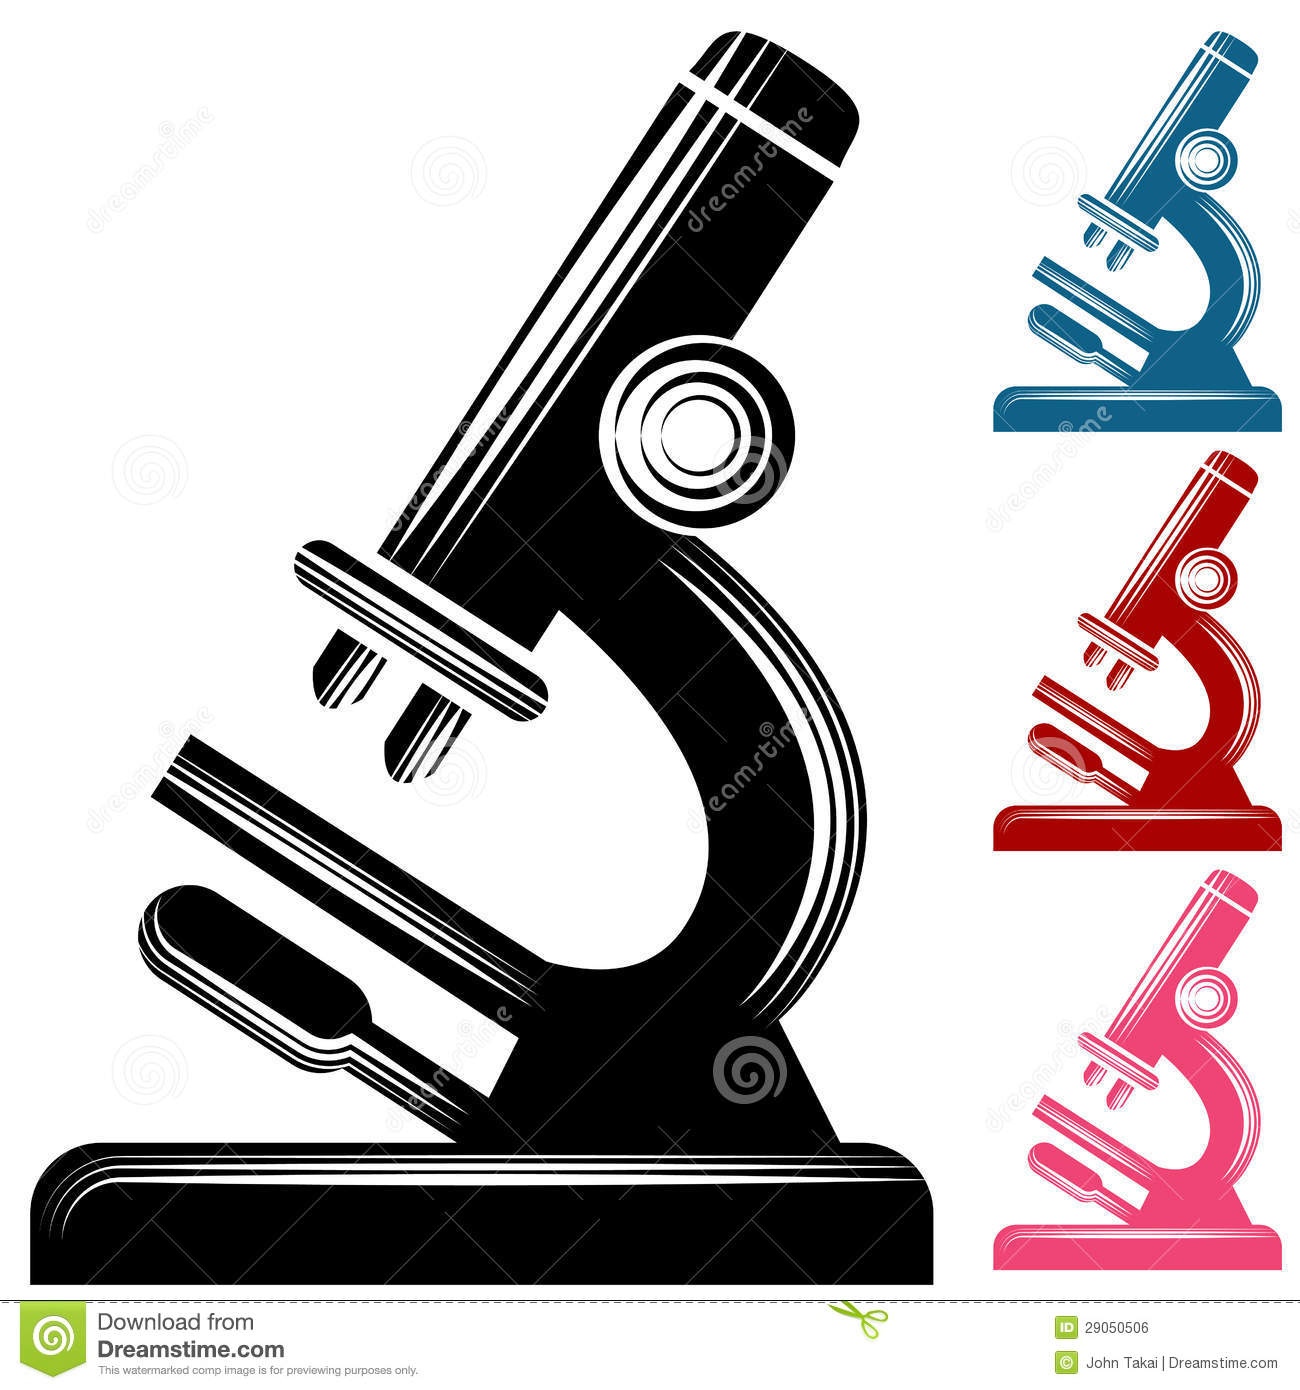 Microscope Clipart Stock Photos, Images, & Pictures.